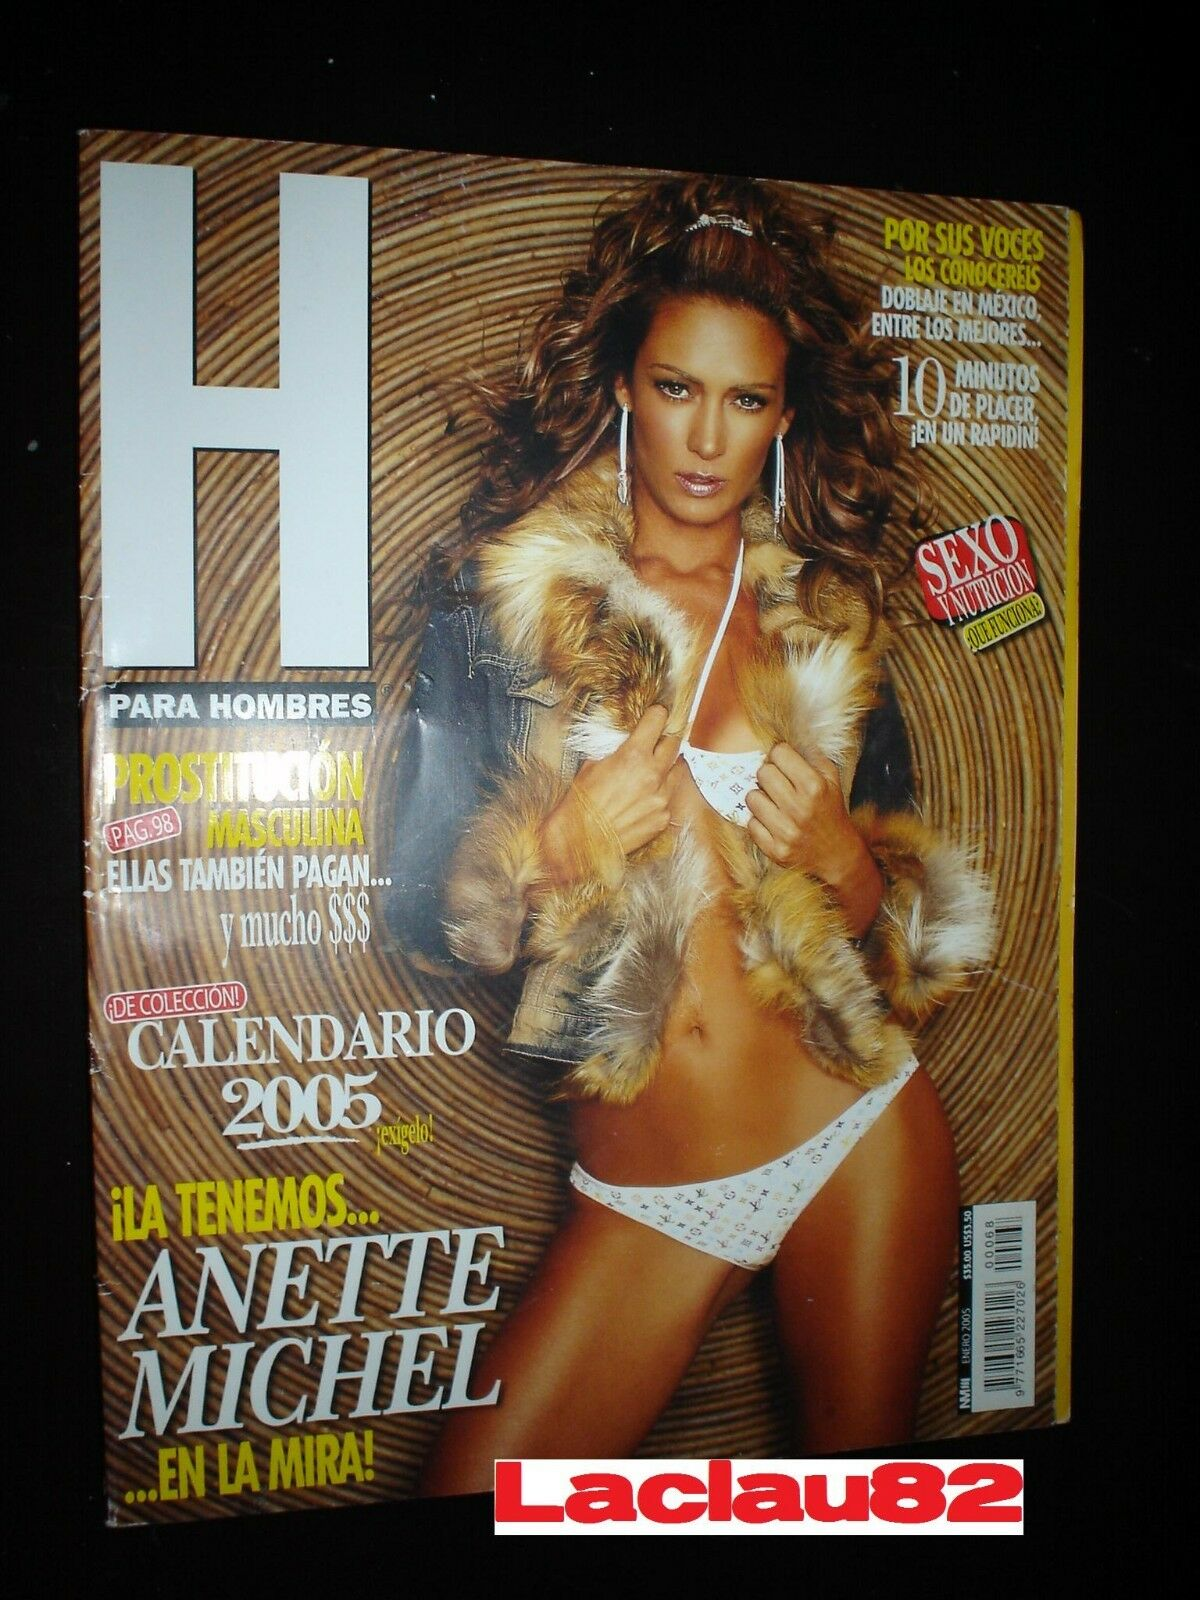 100 Pictures of Anette Michel H Para Hombres